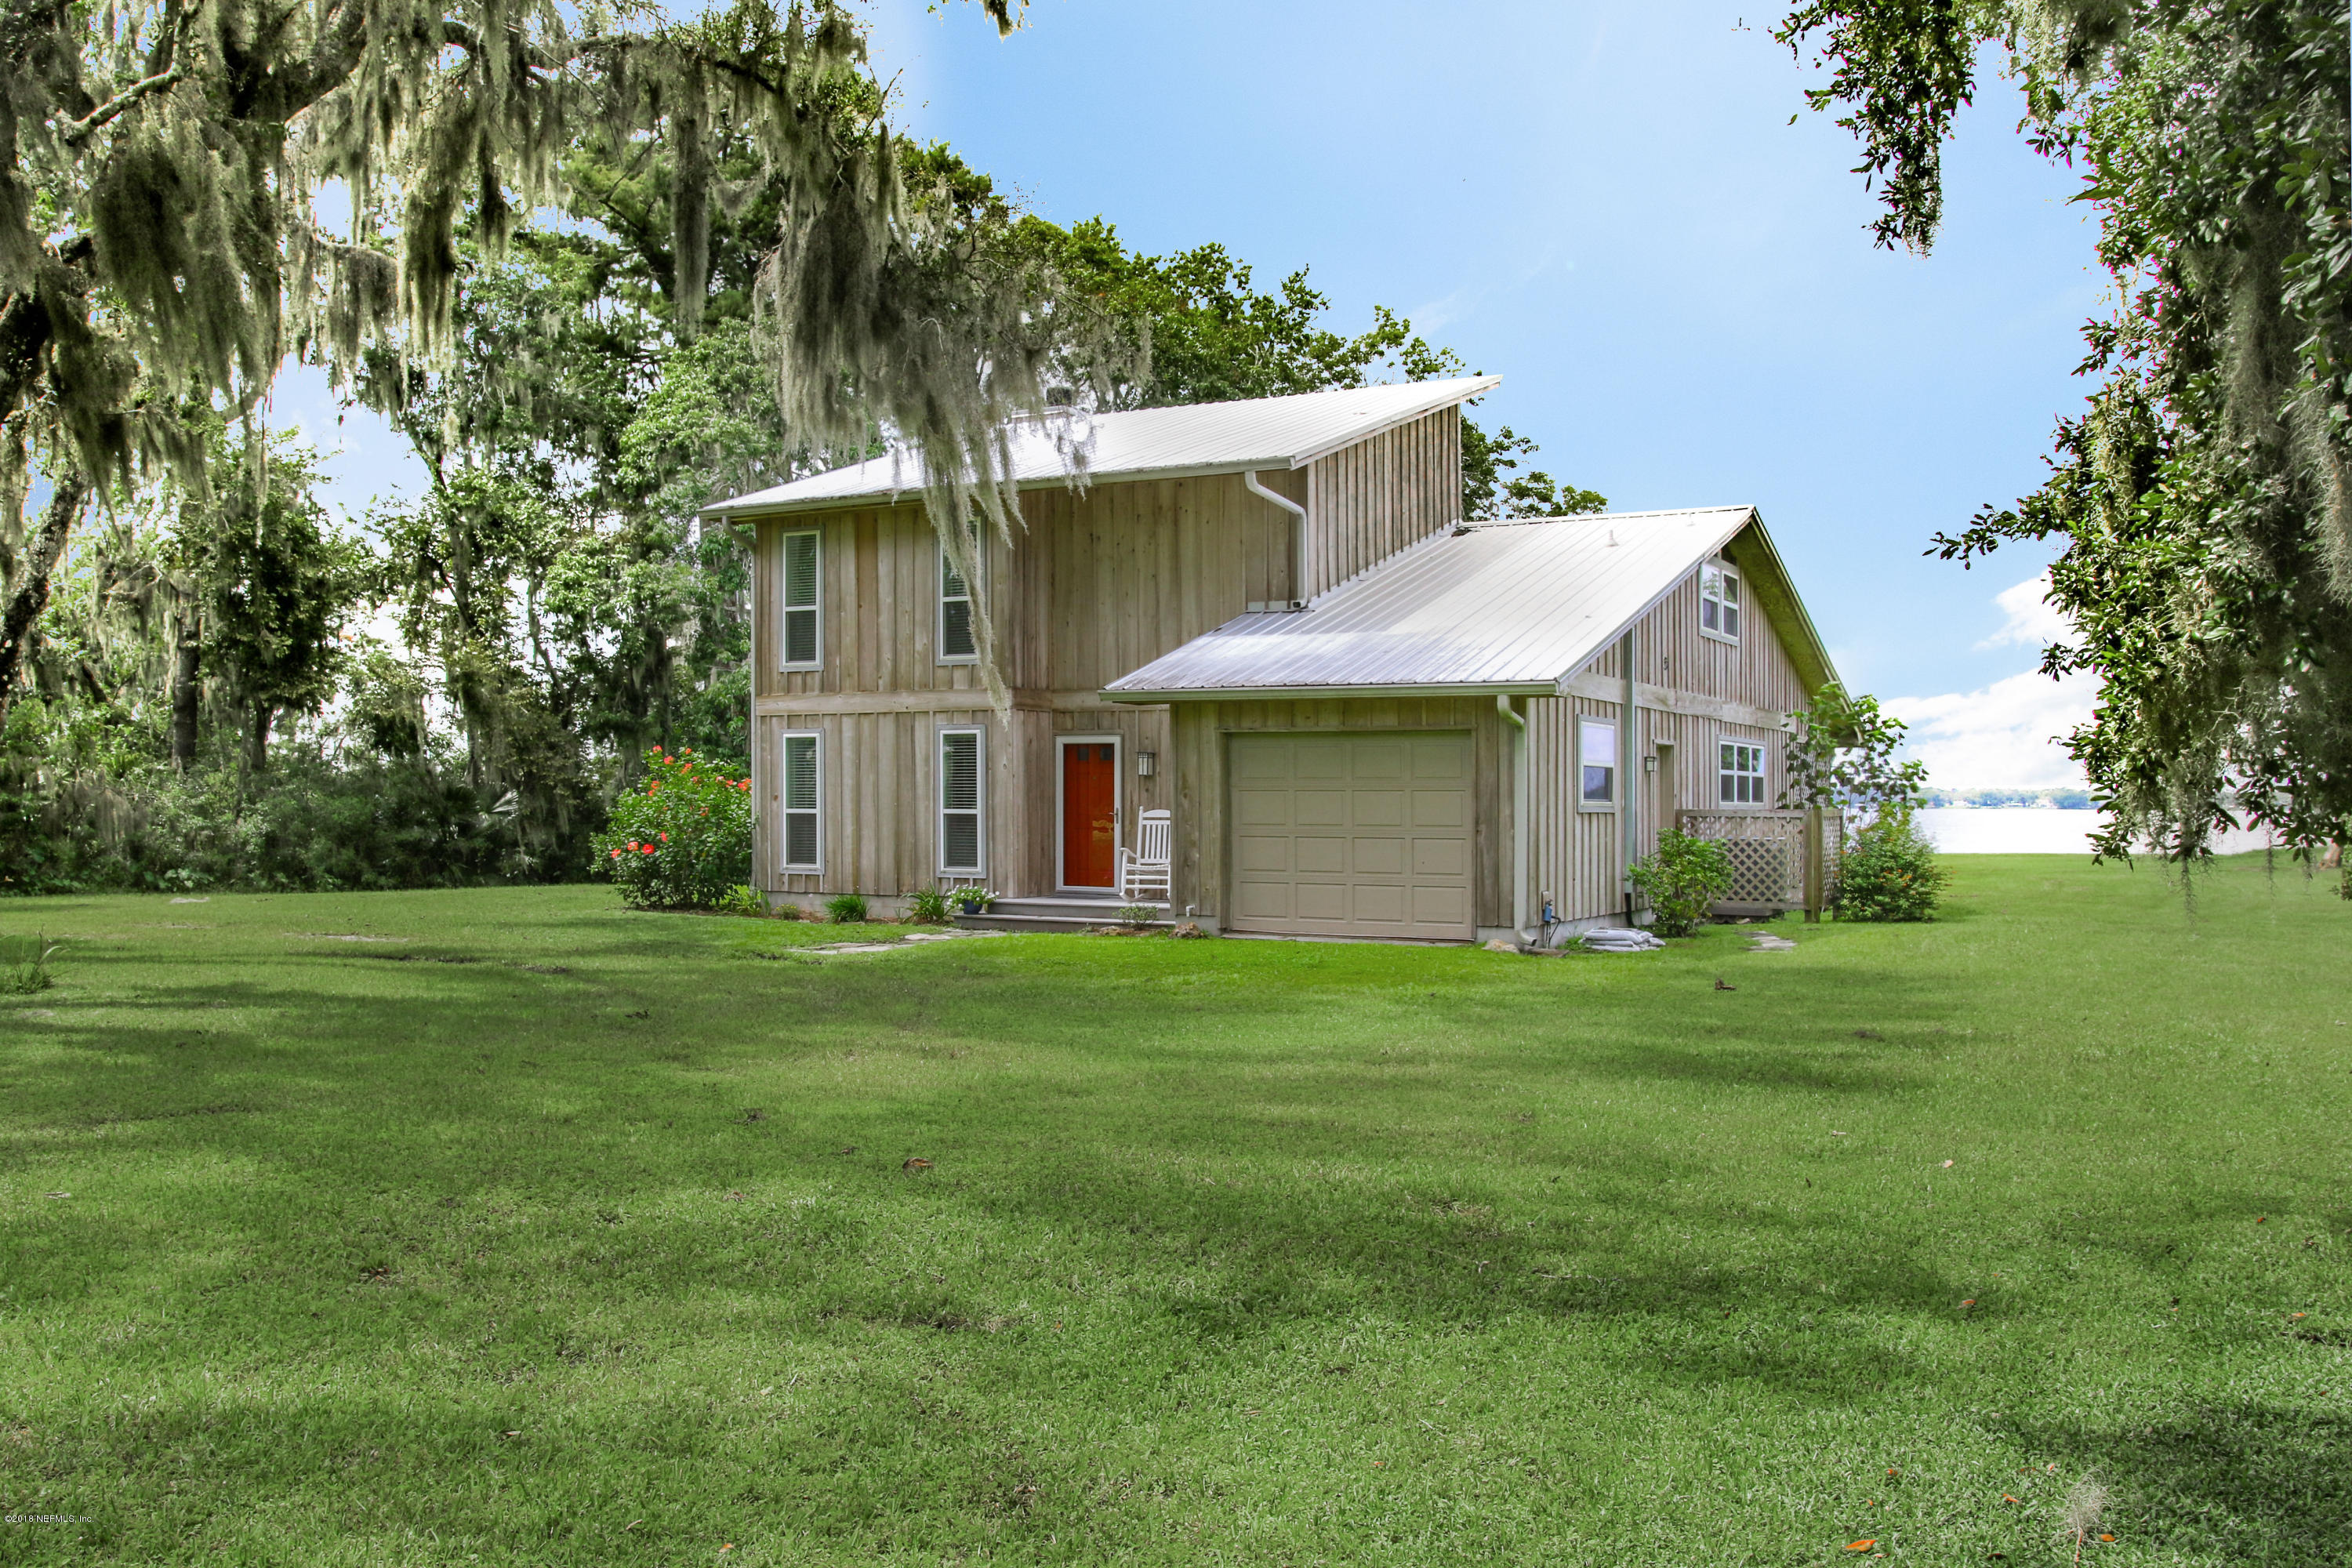 109 GROVELAND, EAST PALATKA, FLORIDA 32131, 3 Bedrooms Bedrooms, ,2 BathroomsBathrooms,Residential - single family,For sale,GROVELAND,922845